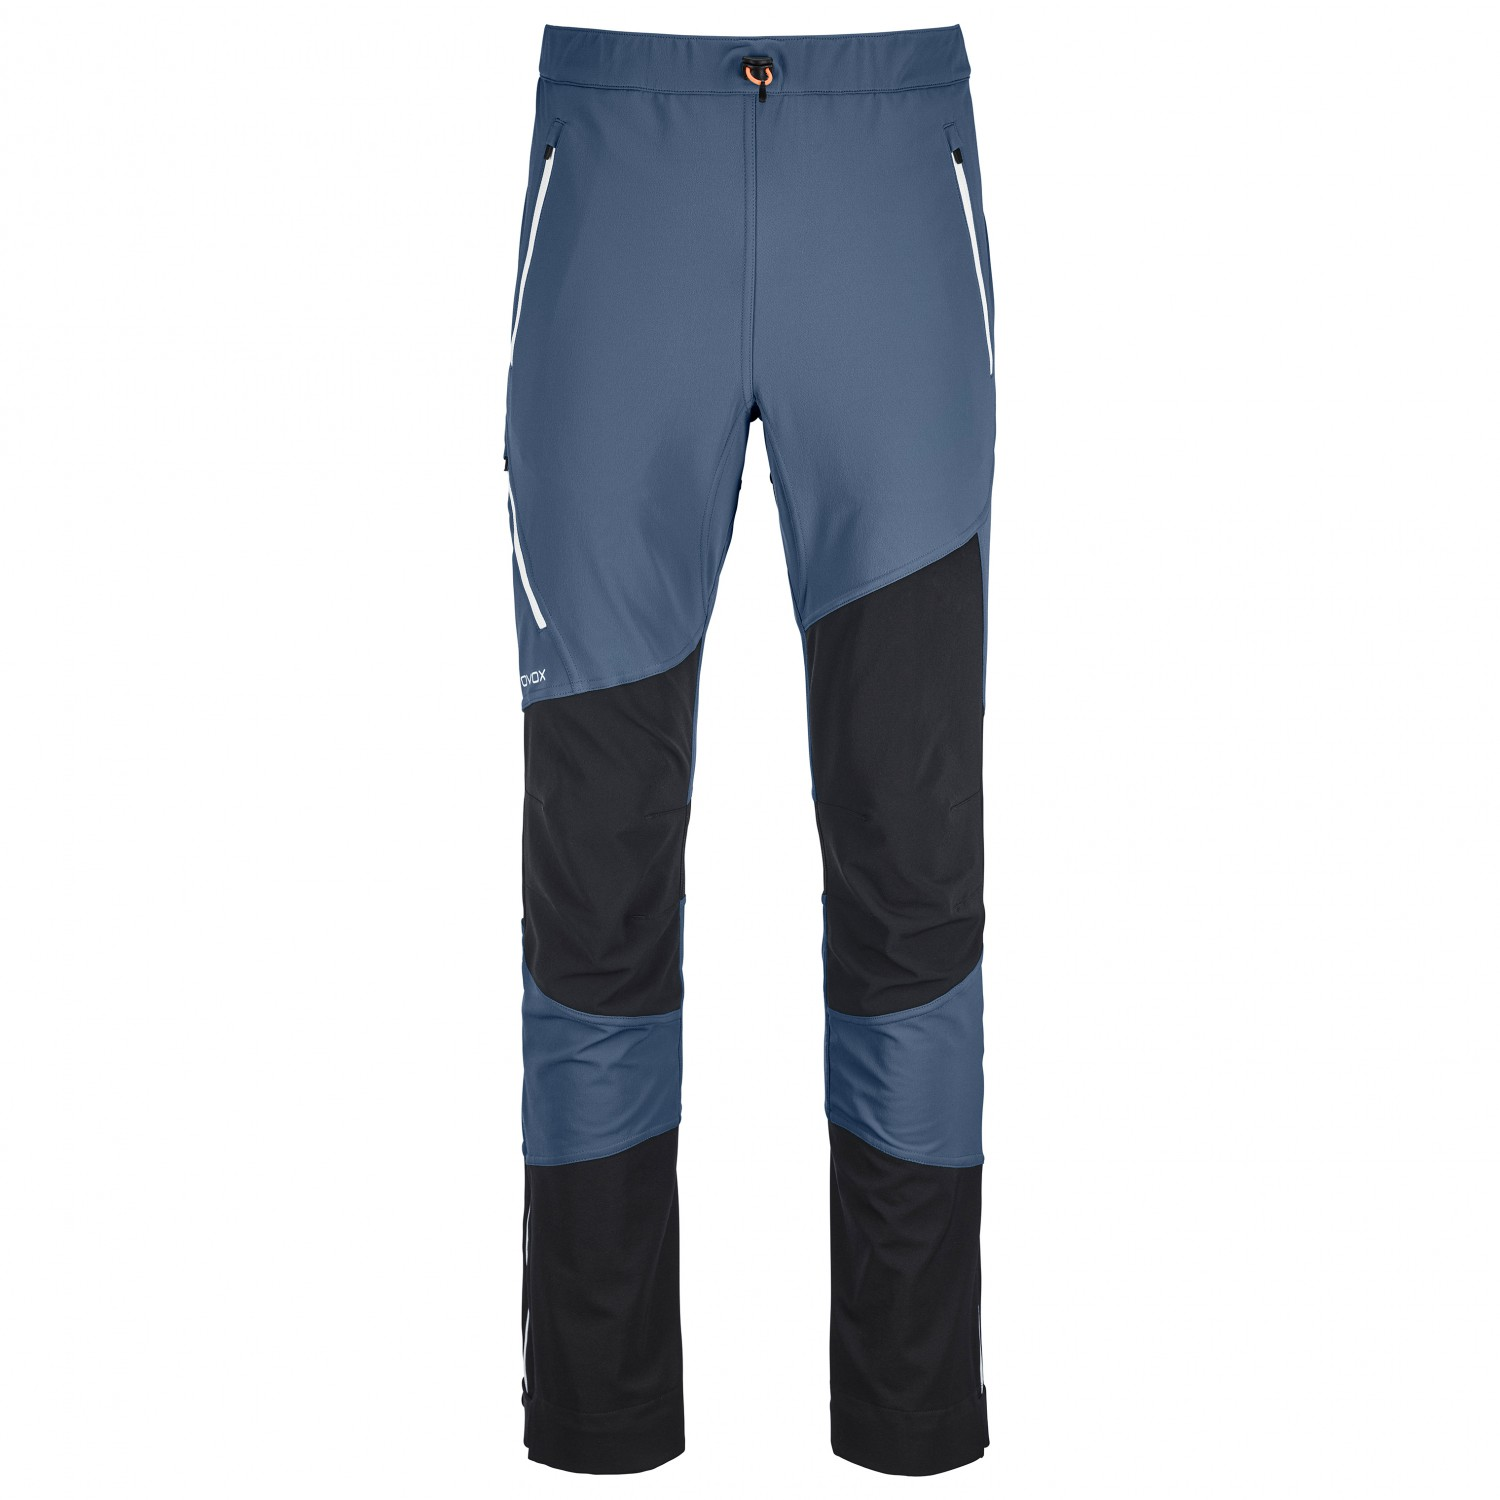 9295354c8d Ortovox Col Becchei Pants - Mountaineering trousers Men s